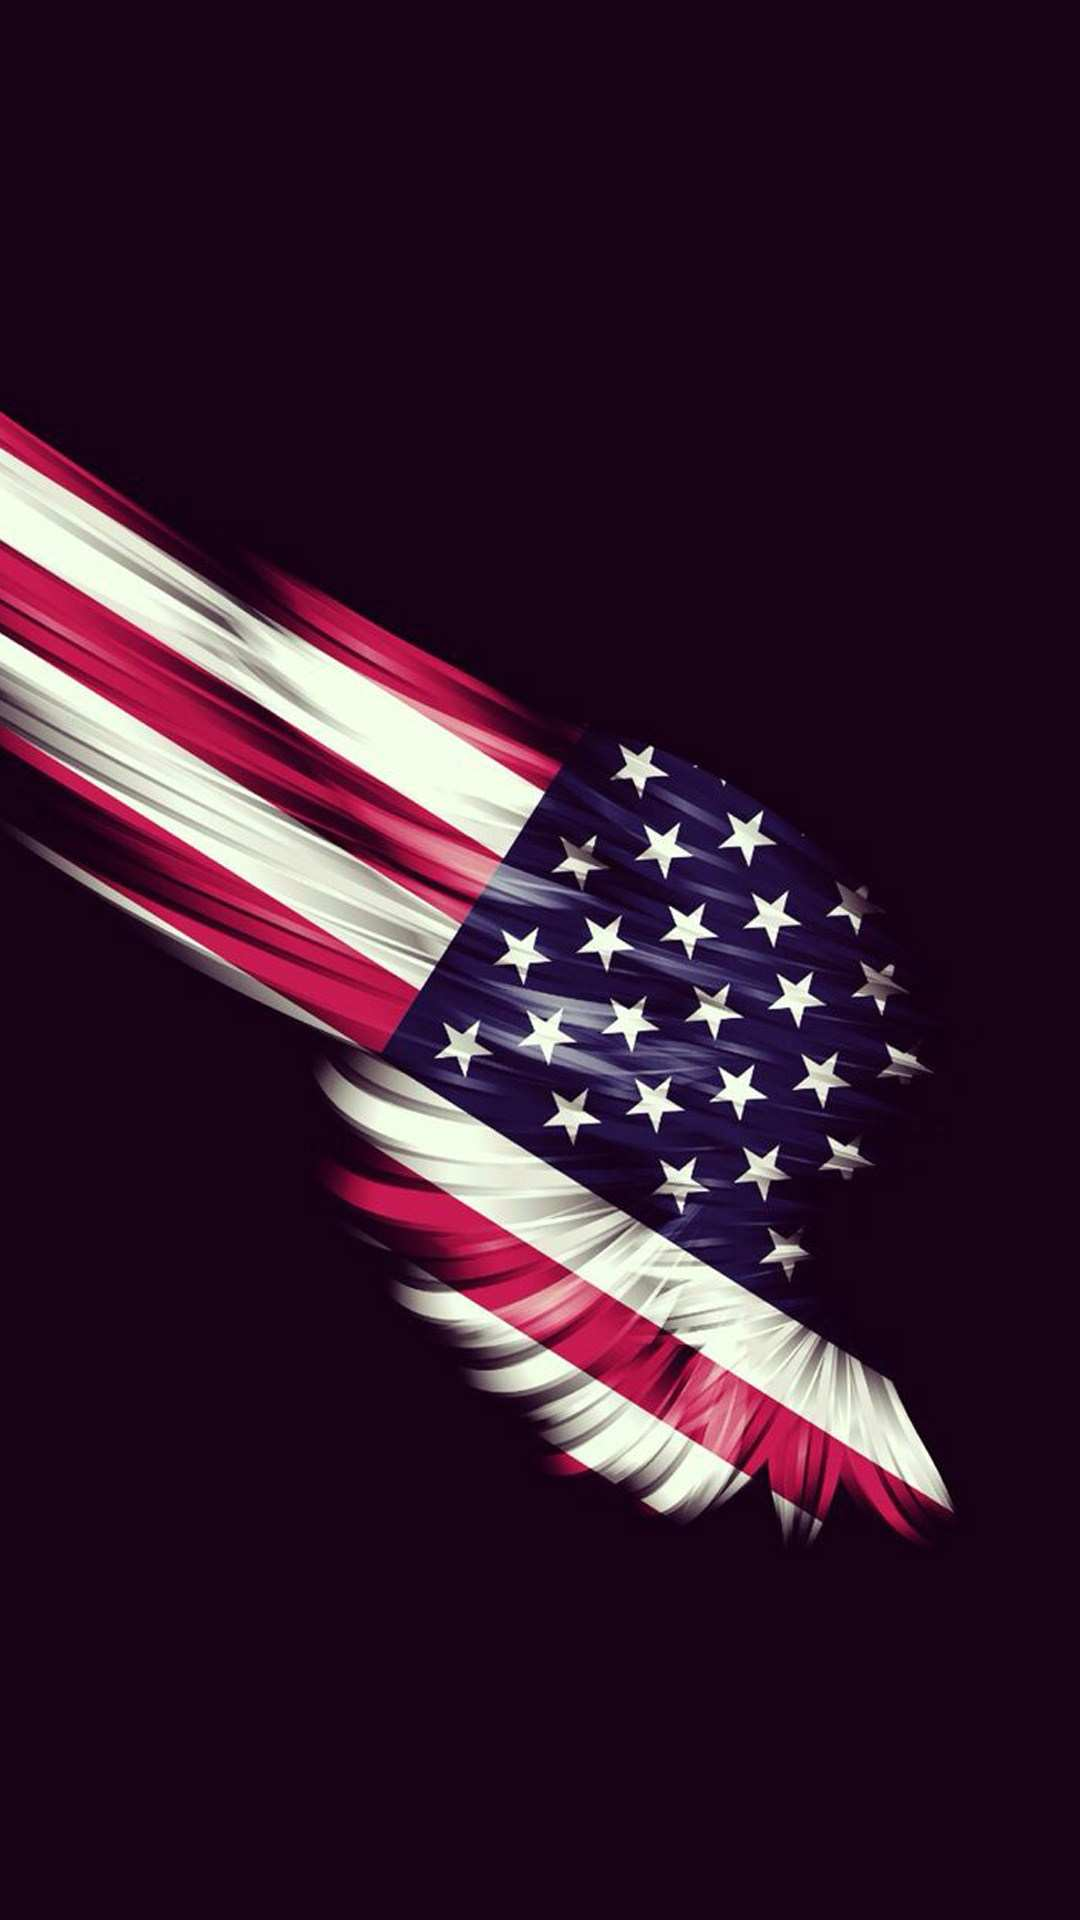 Top 10 Iphone 7 Wallpaper Full Hd Patriotic Cell Phone 32480 Hd Wallpaper Backgrounds Download